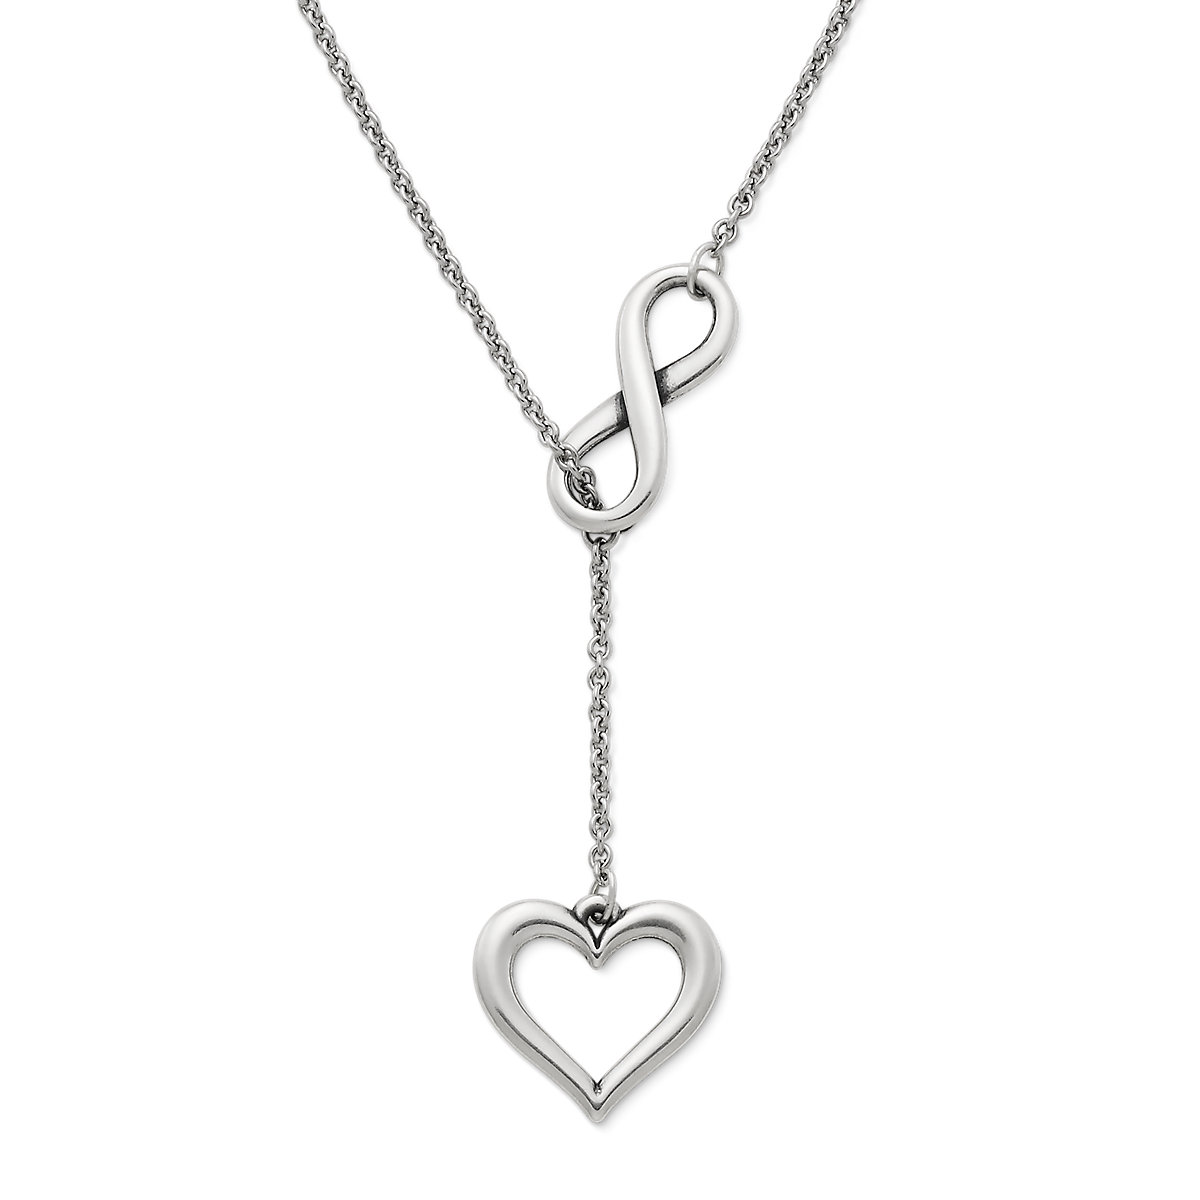 Silver necklaces pendant necklaces james avery infinite love necklace mozeypictures Image collections